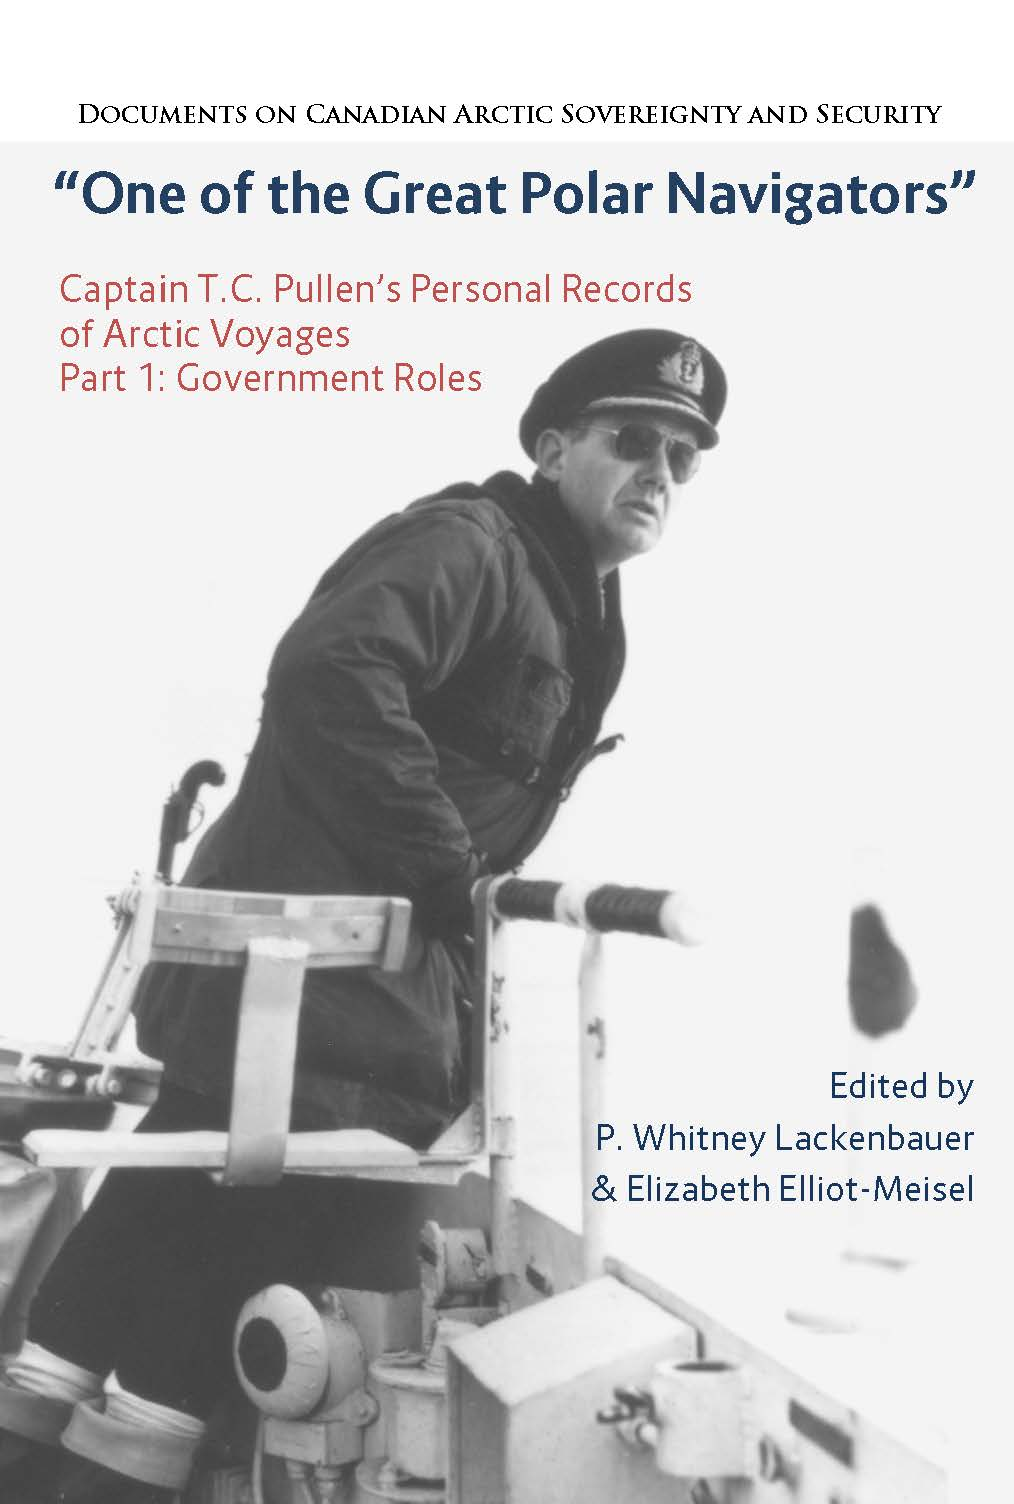 """One of the Great Polar Navigators"": Captain T.C. Pullen's Personal Records of Arctic Voyages, Volume 1: Official Roles"